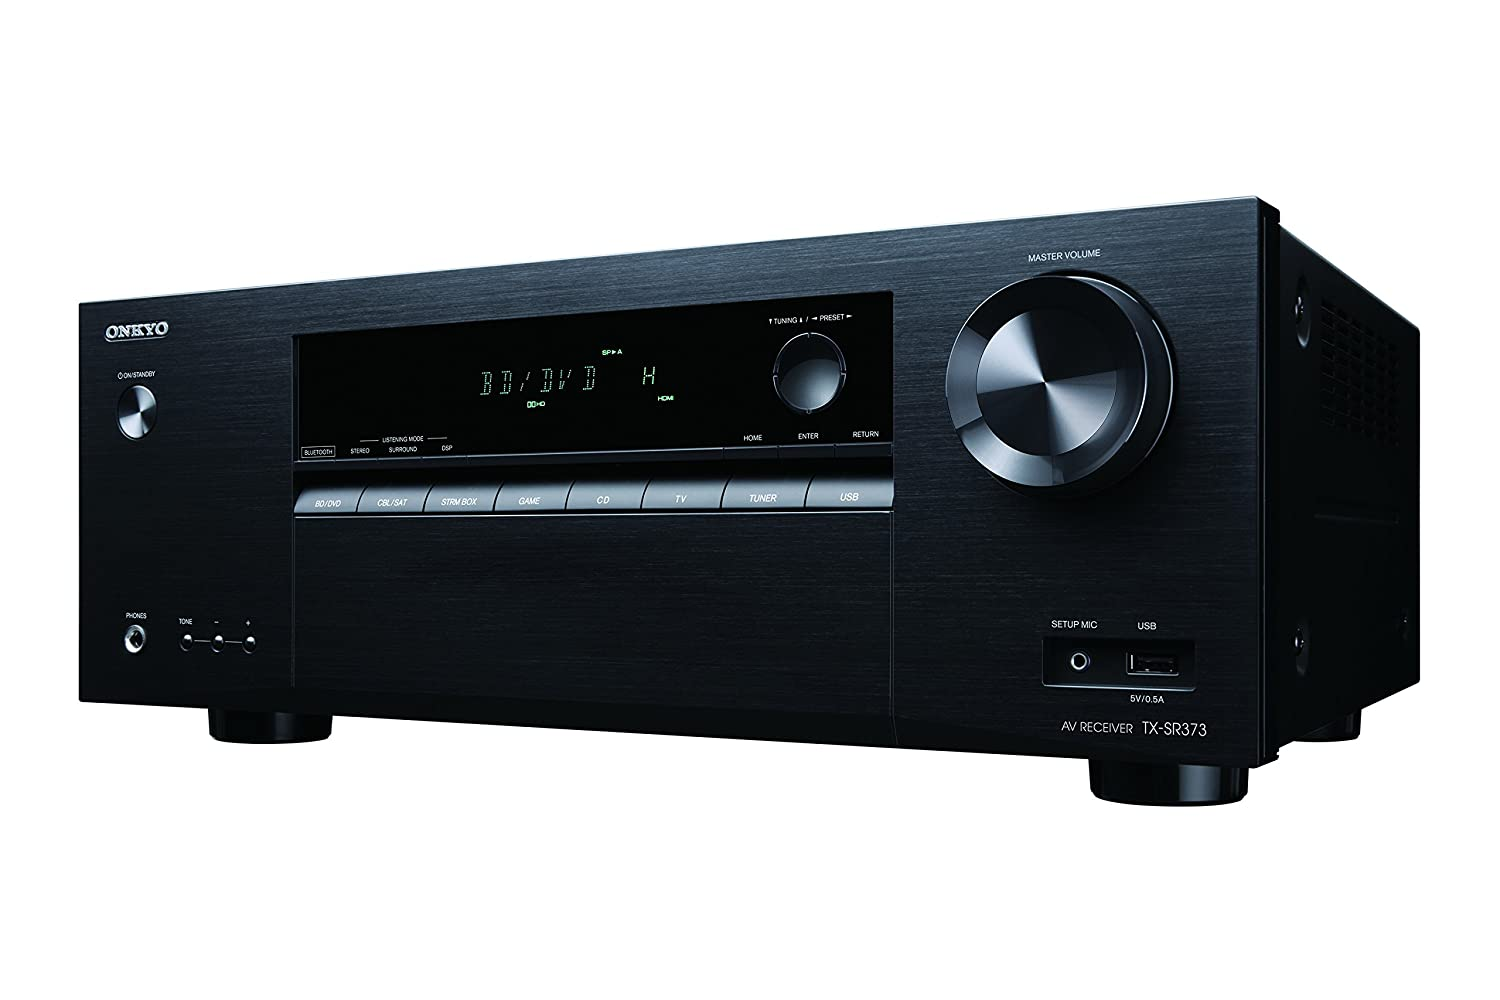 Amazon.com: Onkyo TX-SR373 5.2 Channel A/V Receiver with Bluetooth:  Electronics